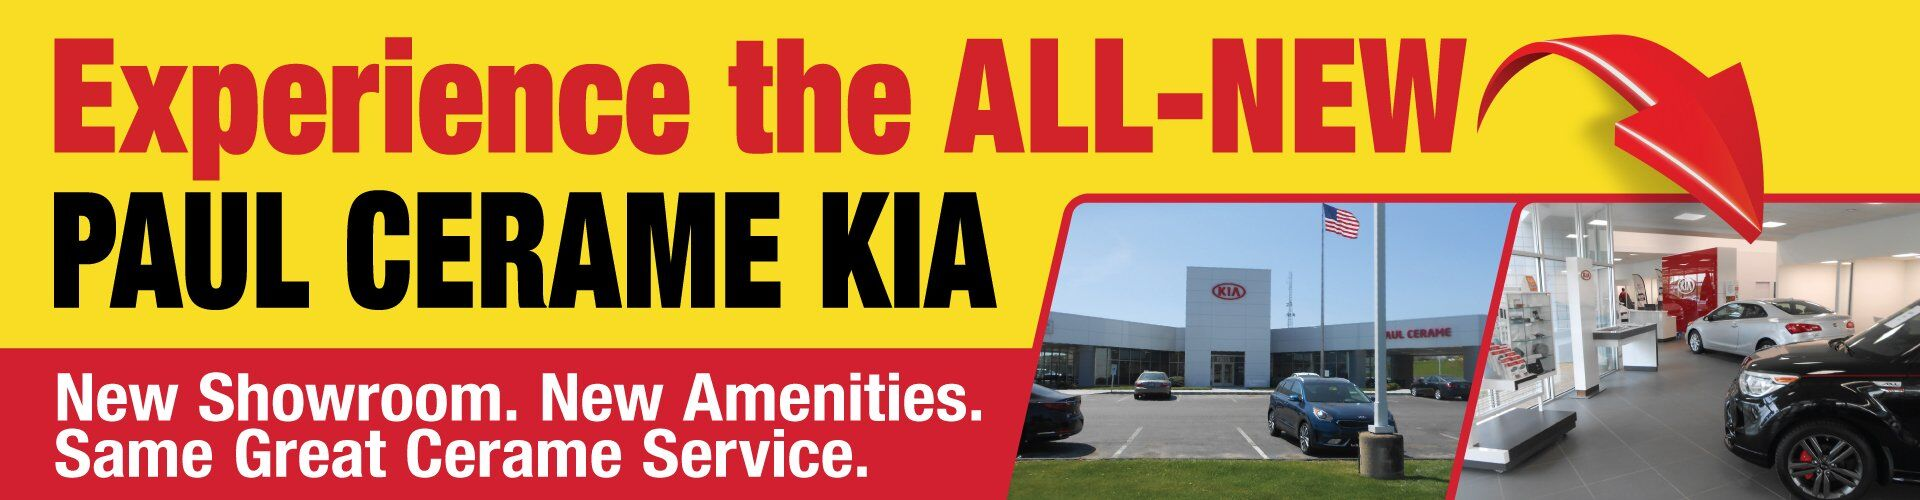 Al New Paul Cerame Kia Store